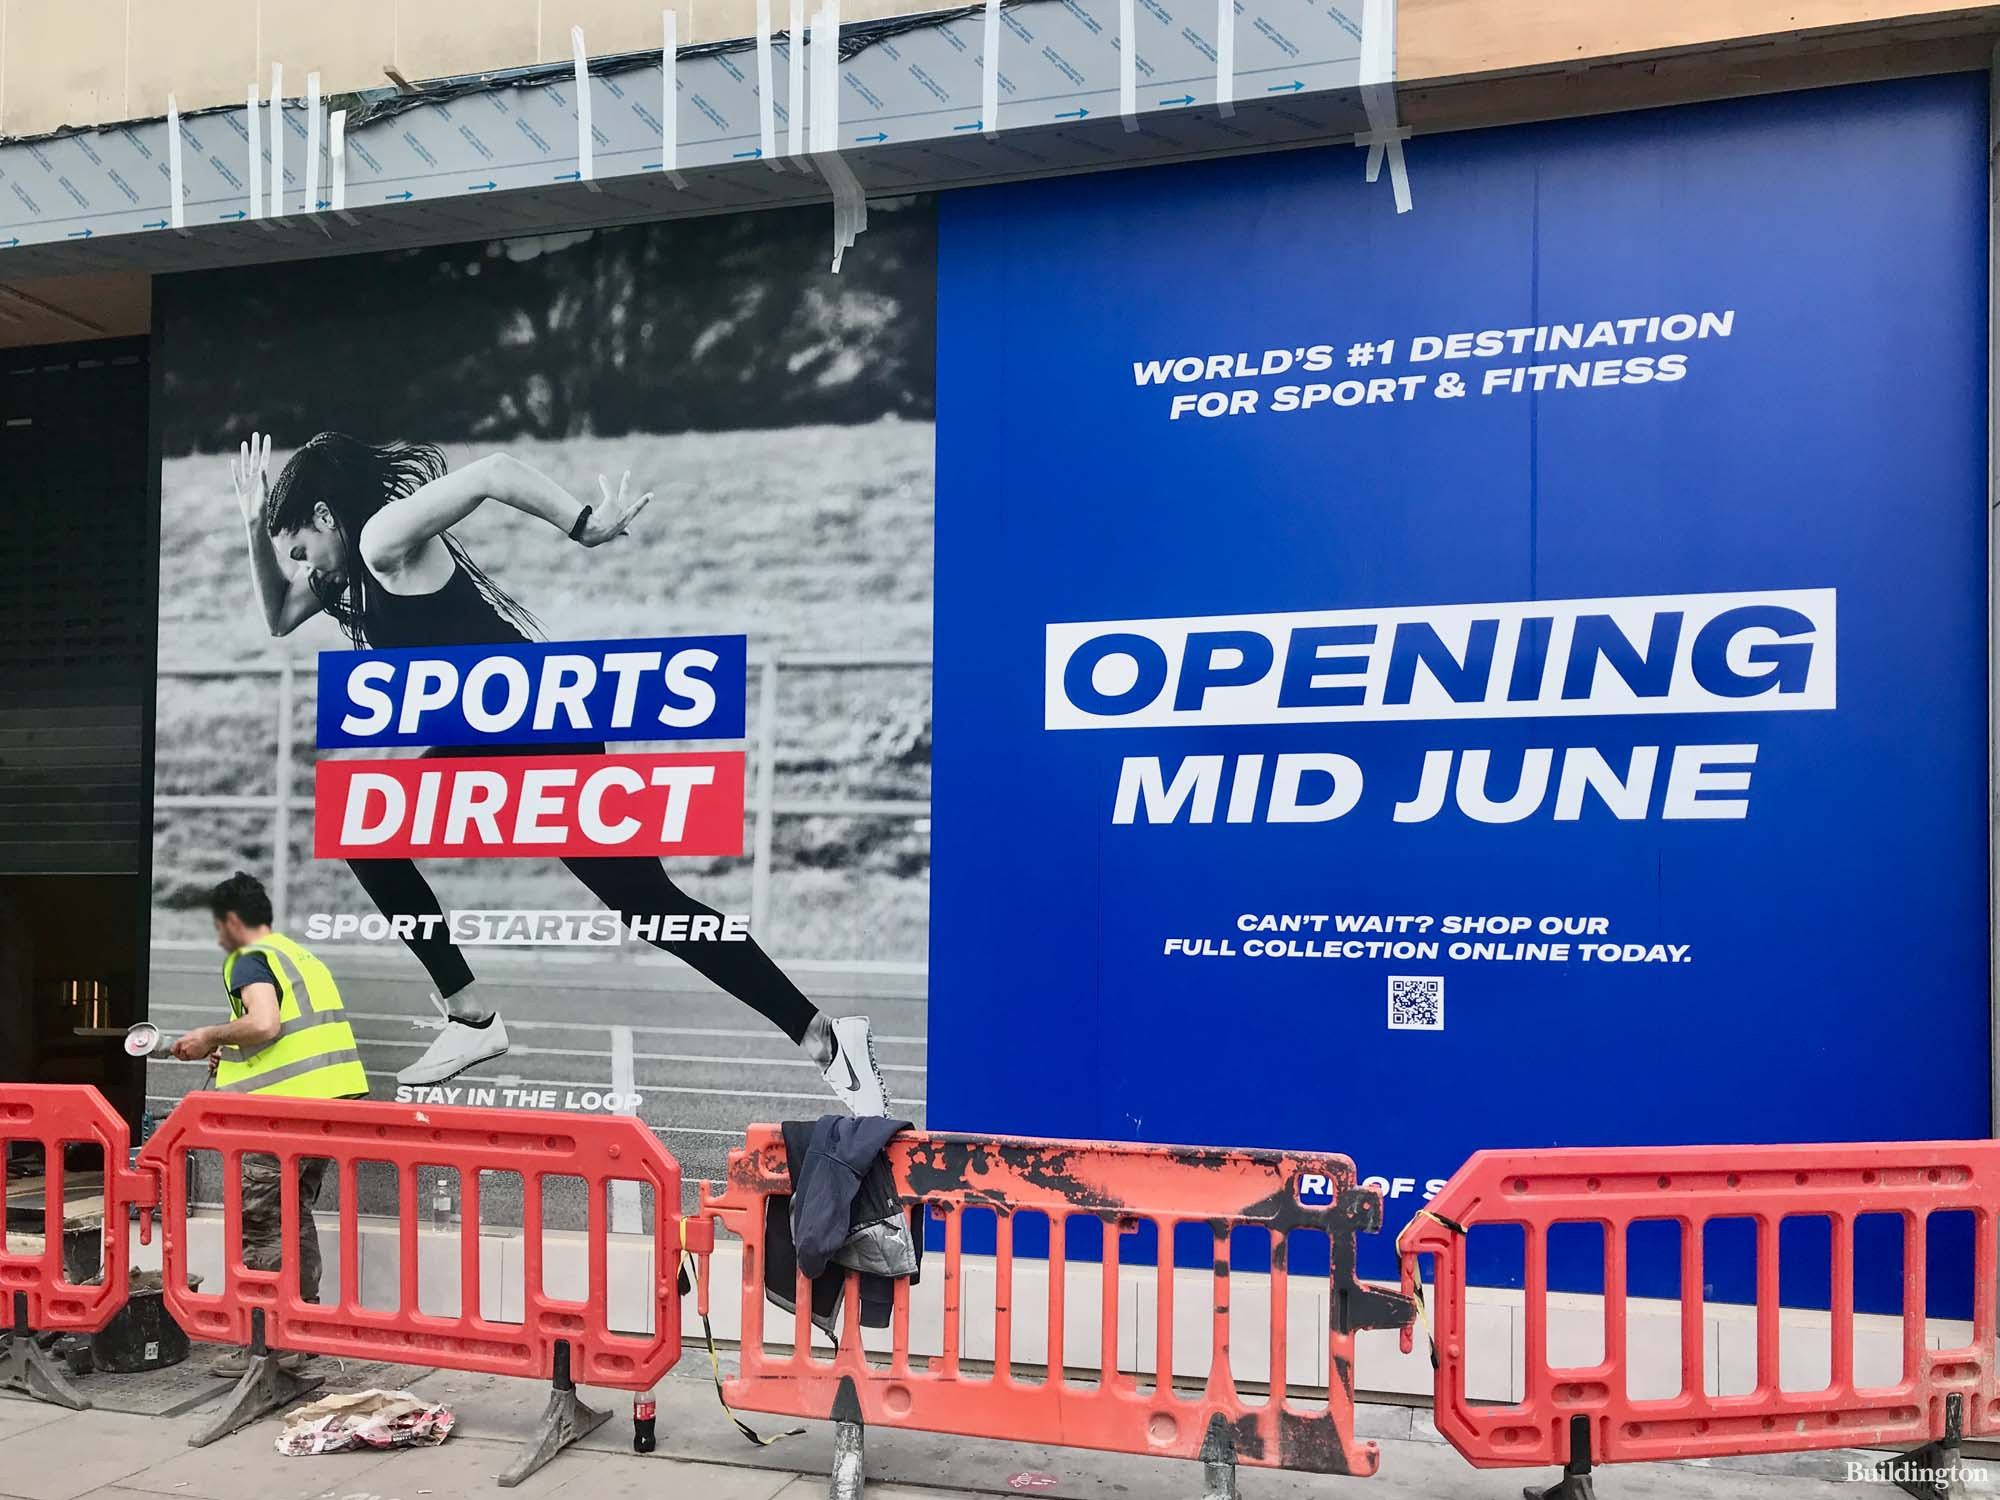 Sports Direct's refurbished store is opening mid-June.